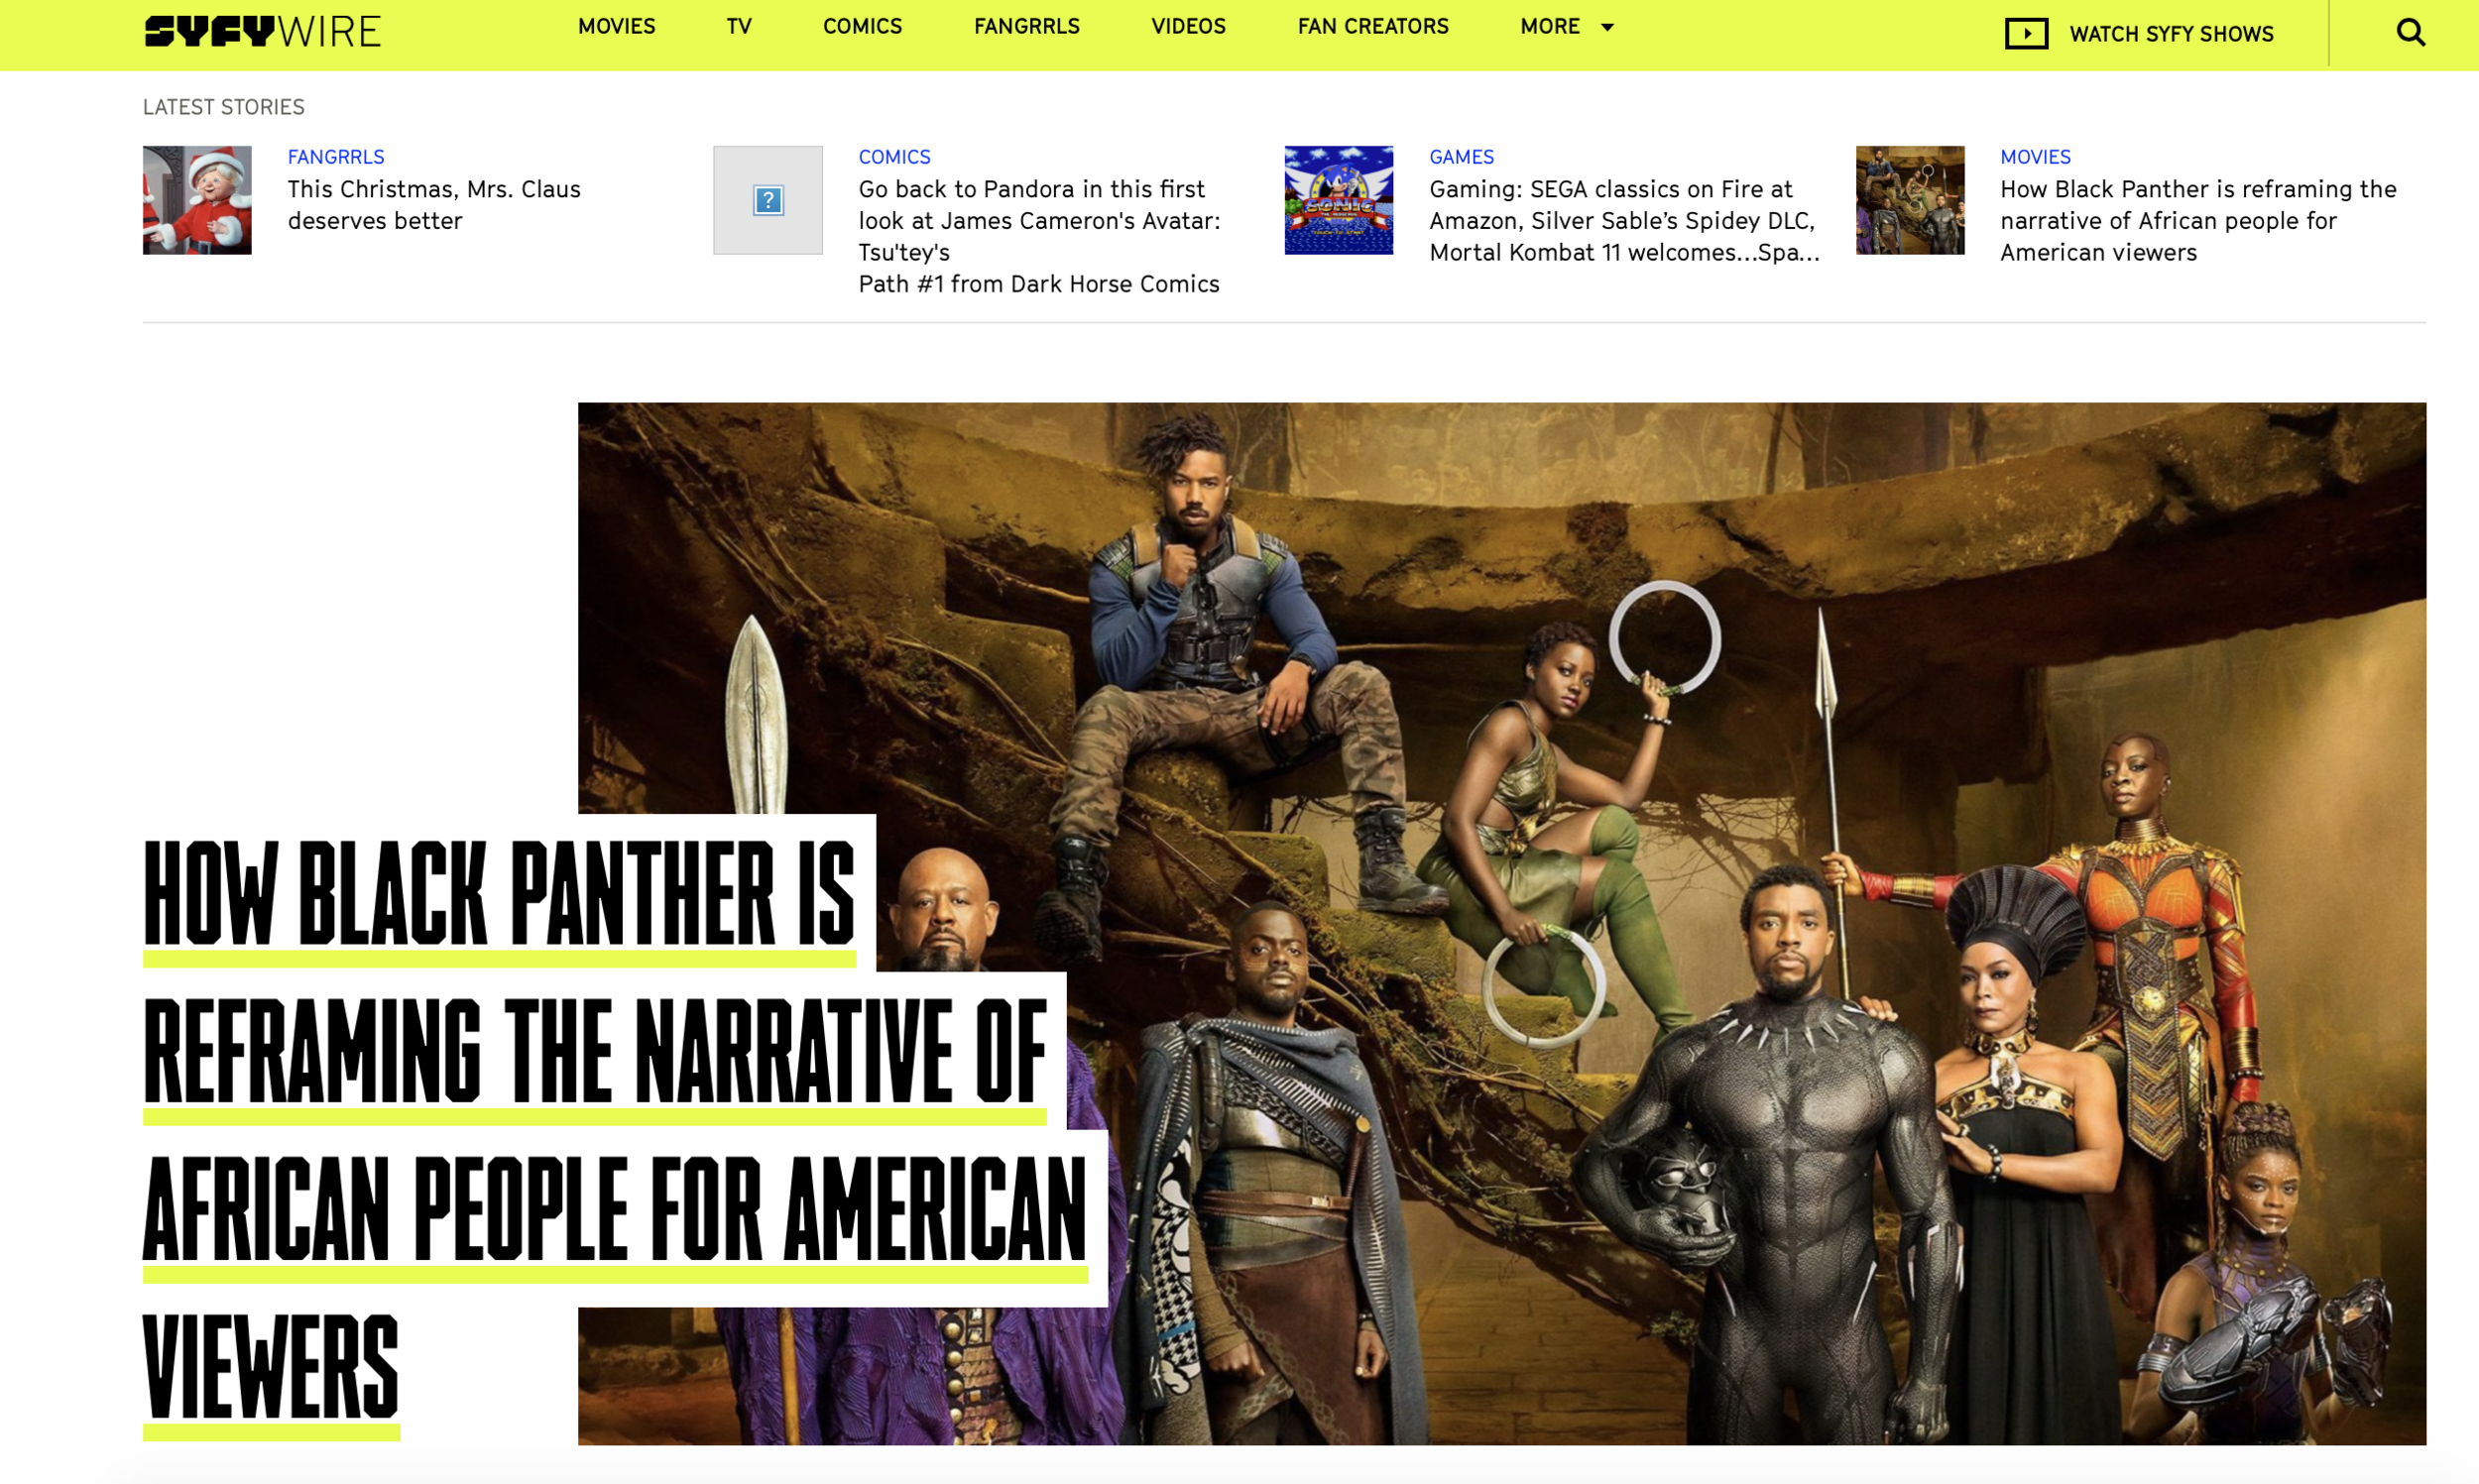 SYFYWIRE | HOW BLACK PANTHER IS REFRAMING THE NARRATIVE OF AFRICAN PEOPLE FOR AMERICAN VIEWERS - From conversations about the diaspora, Black representation, and cultural significance, the film created space to discuss Blackness in a new and more inclusive way.